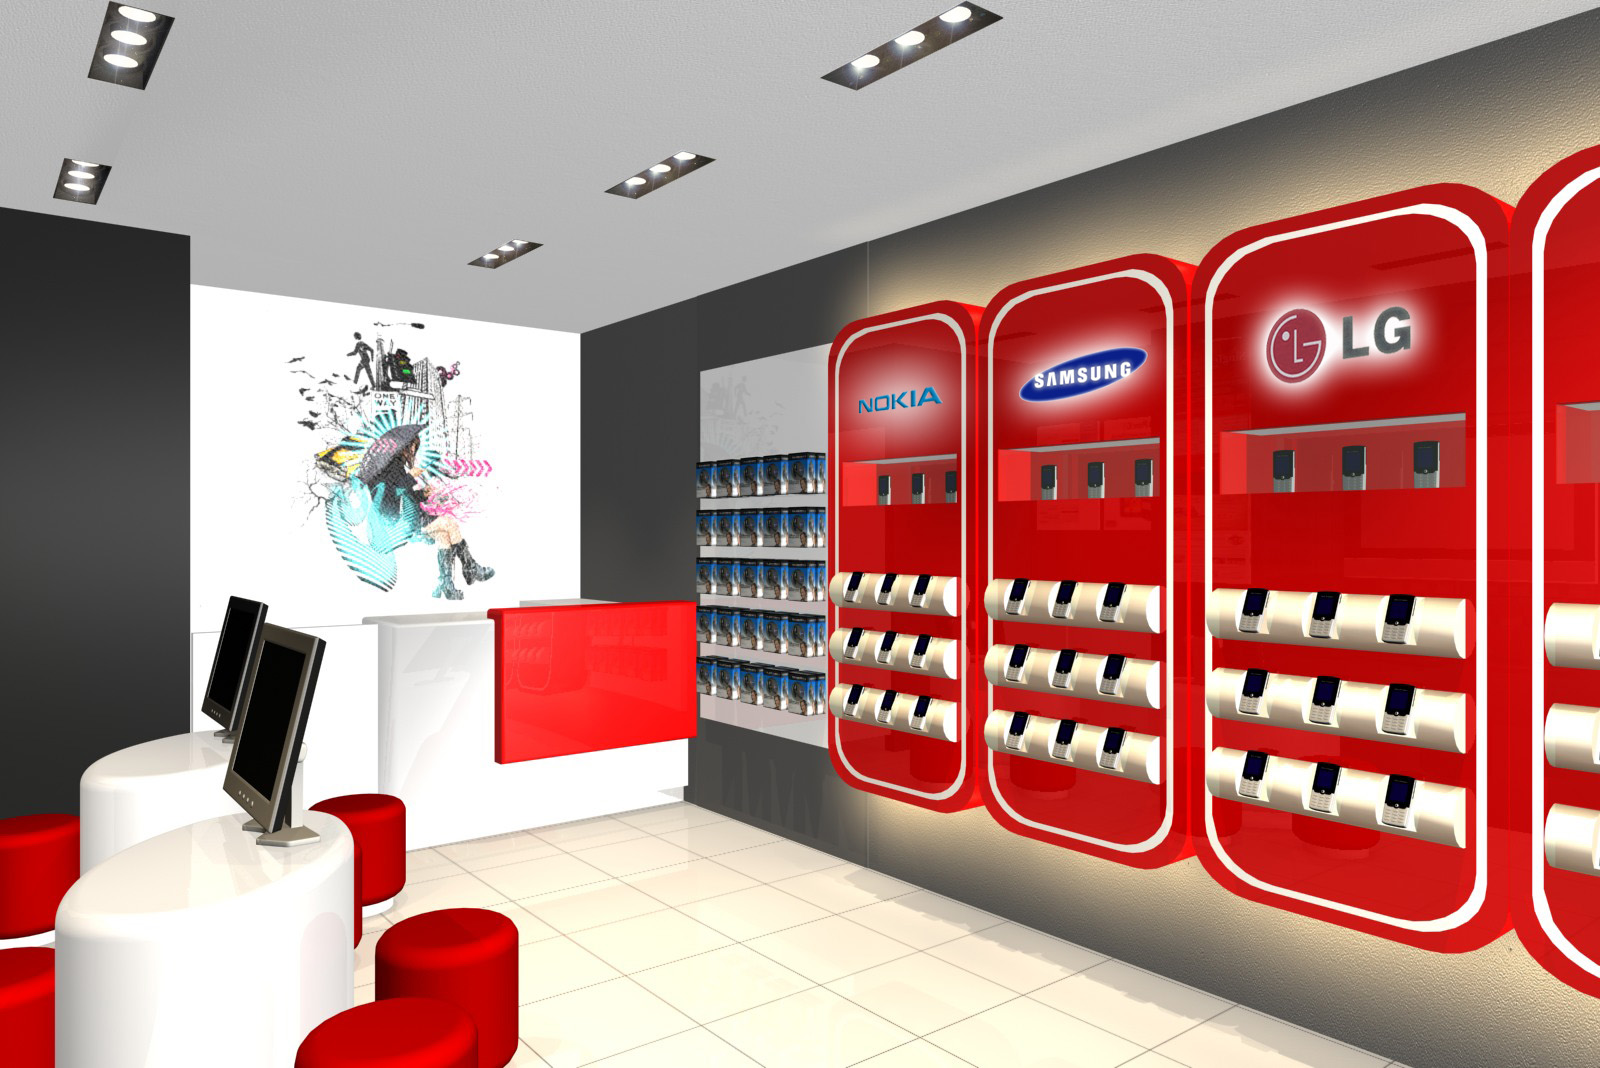 Mobile Shop Interior Design Ideas - Home Design Ideas